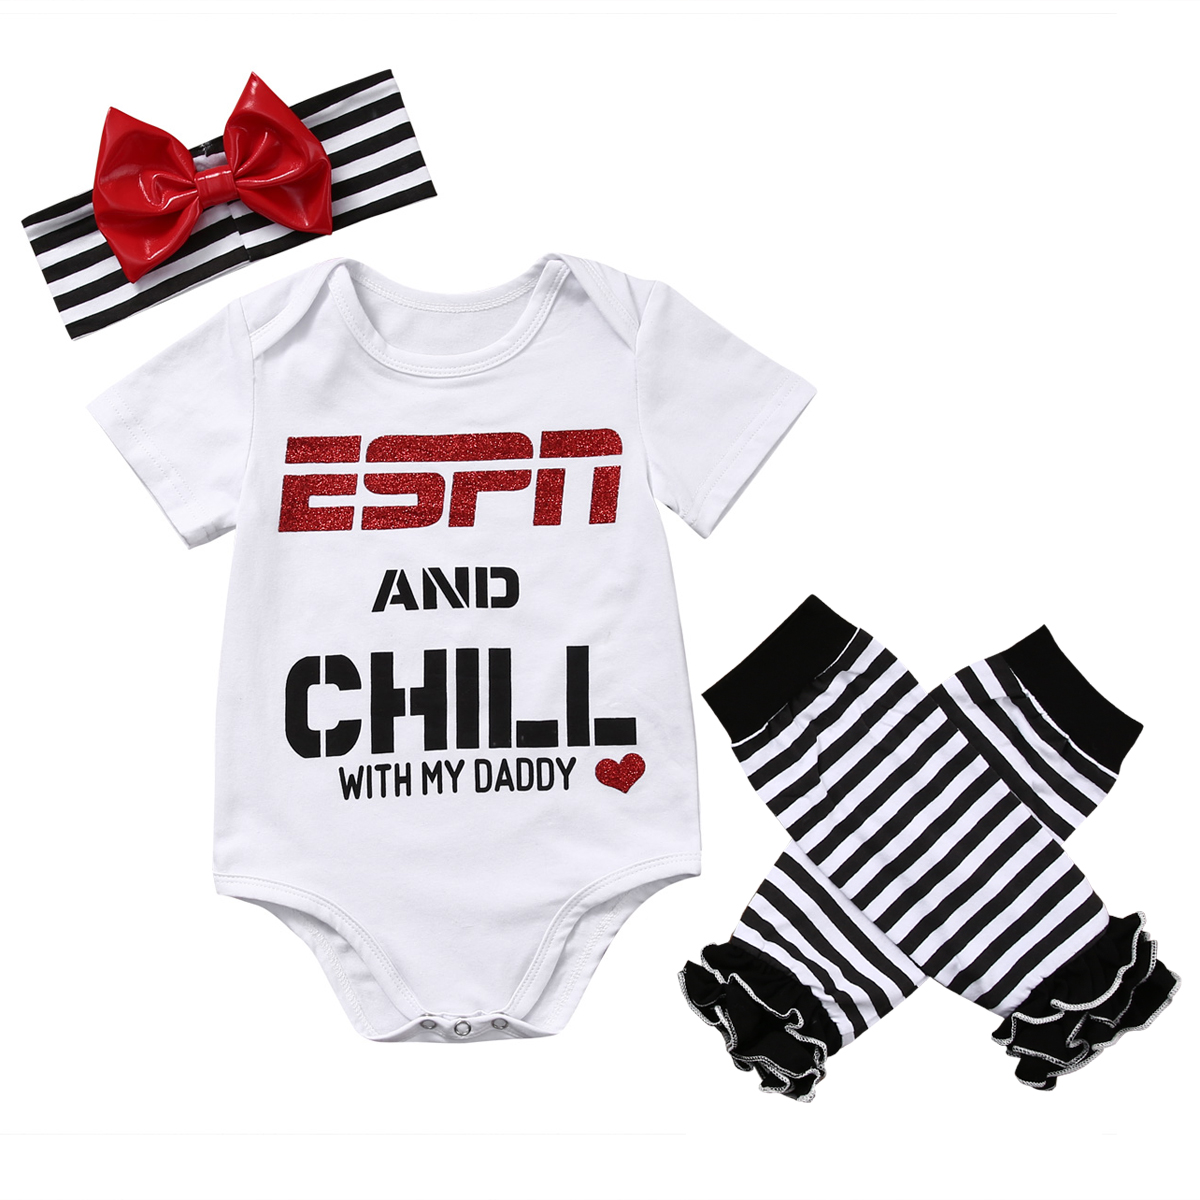 Summer Autumn Kids Boy Outfits Letters Rompers Striped Legg Warmers Headband 3PCS Clothes Set Cotton Children Clothing Sets